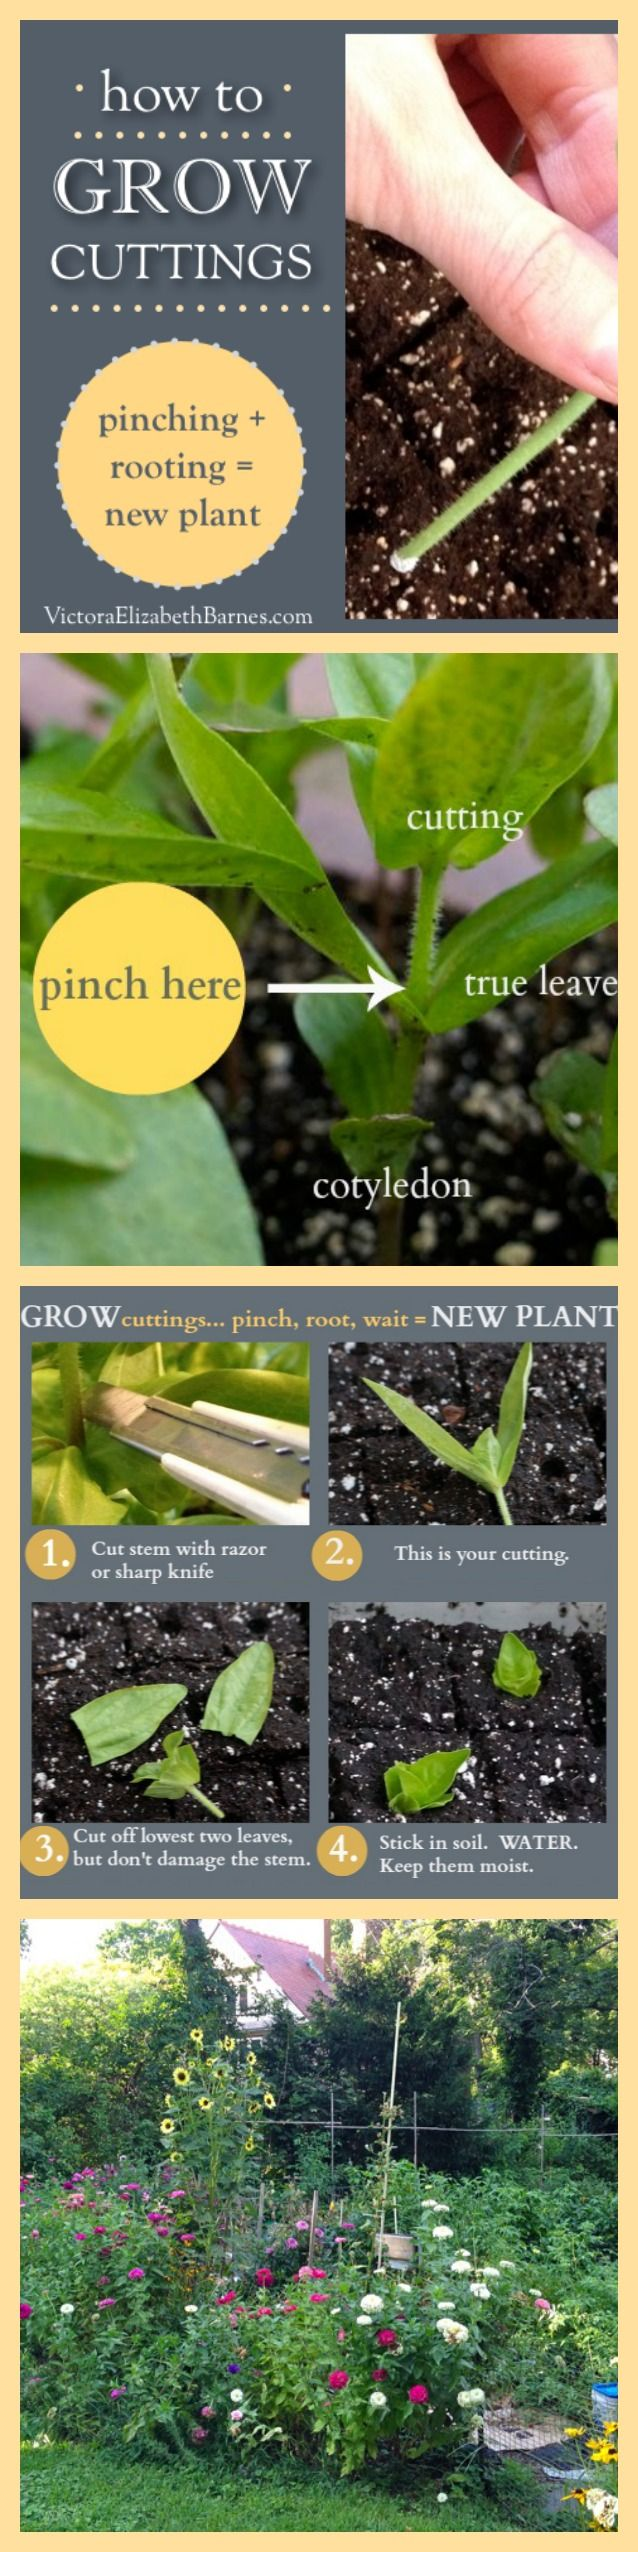 How to grow plant cuttings.